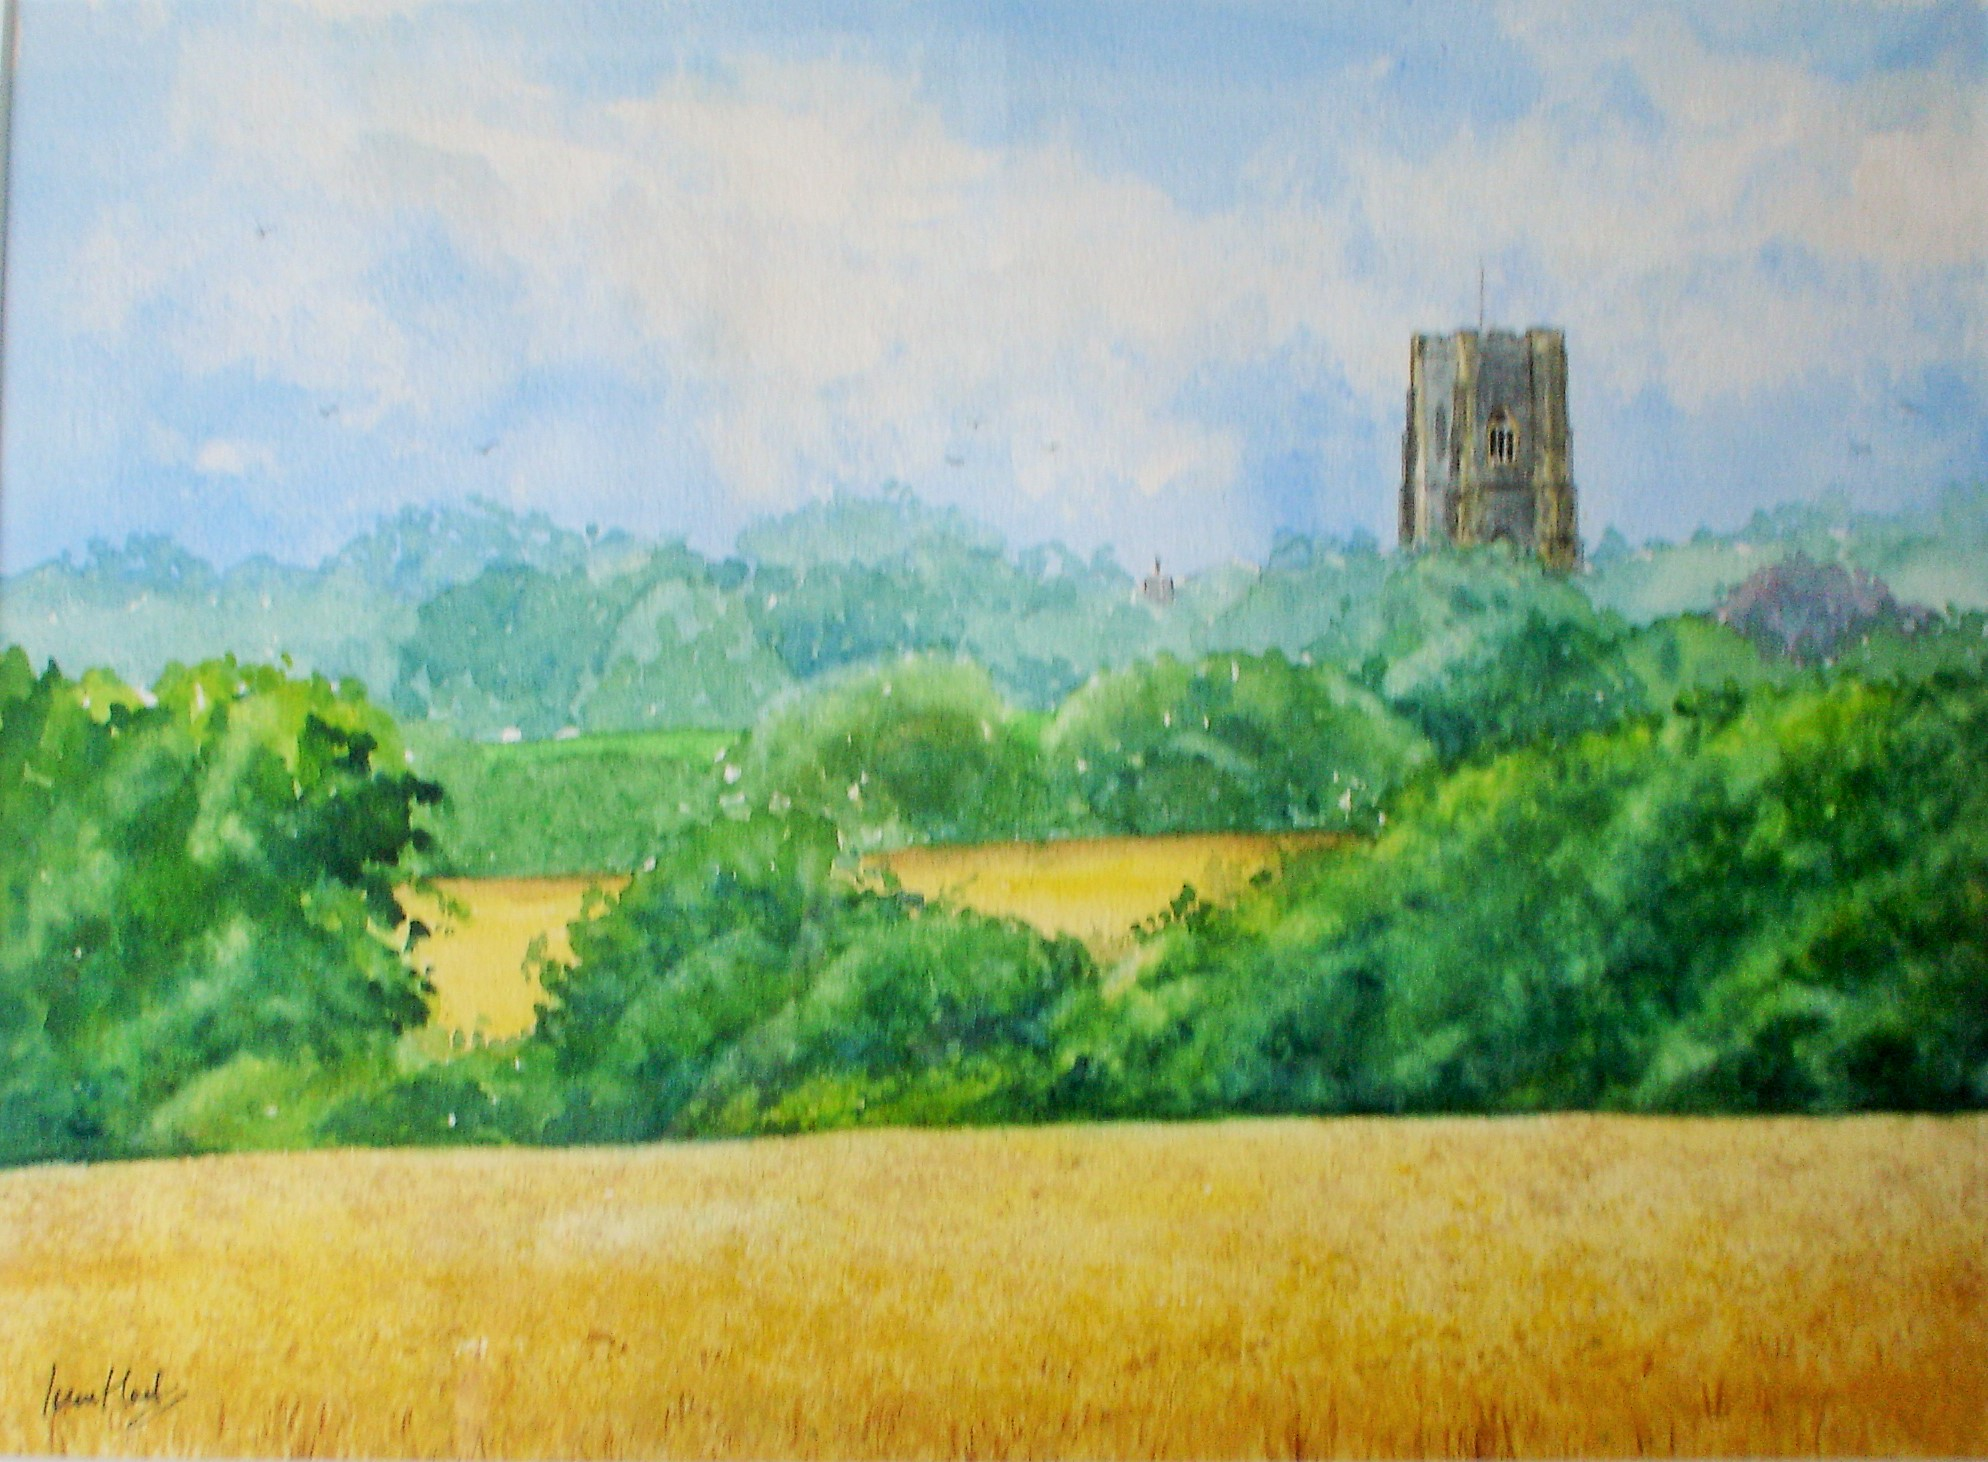 Landscape View, Lavenham (Watercolour)